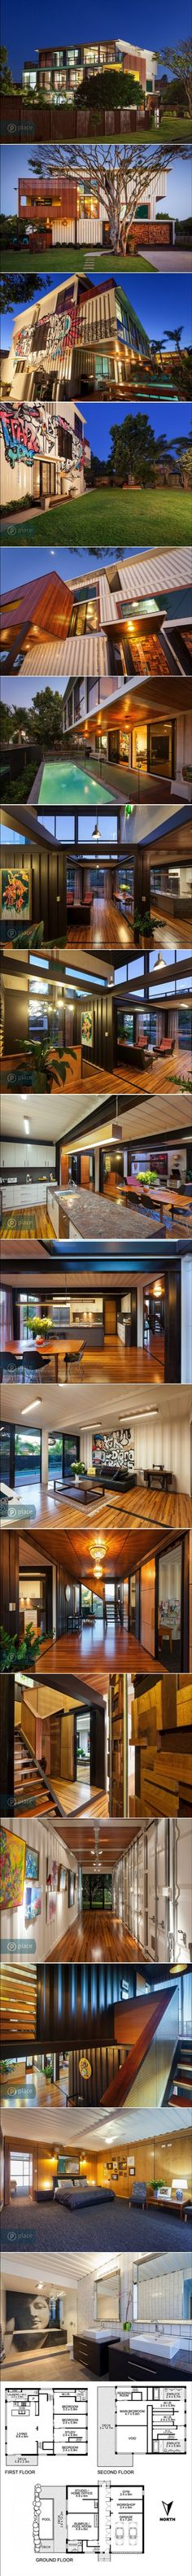 31 Shipping Container Home by ZieglerBuild | HomeDSGN